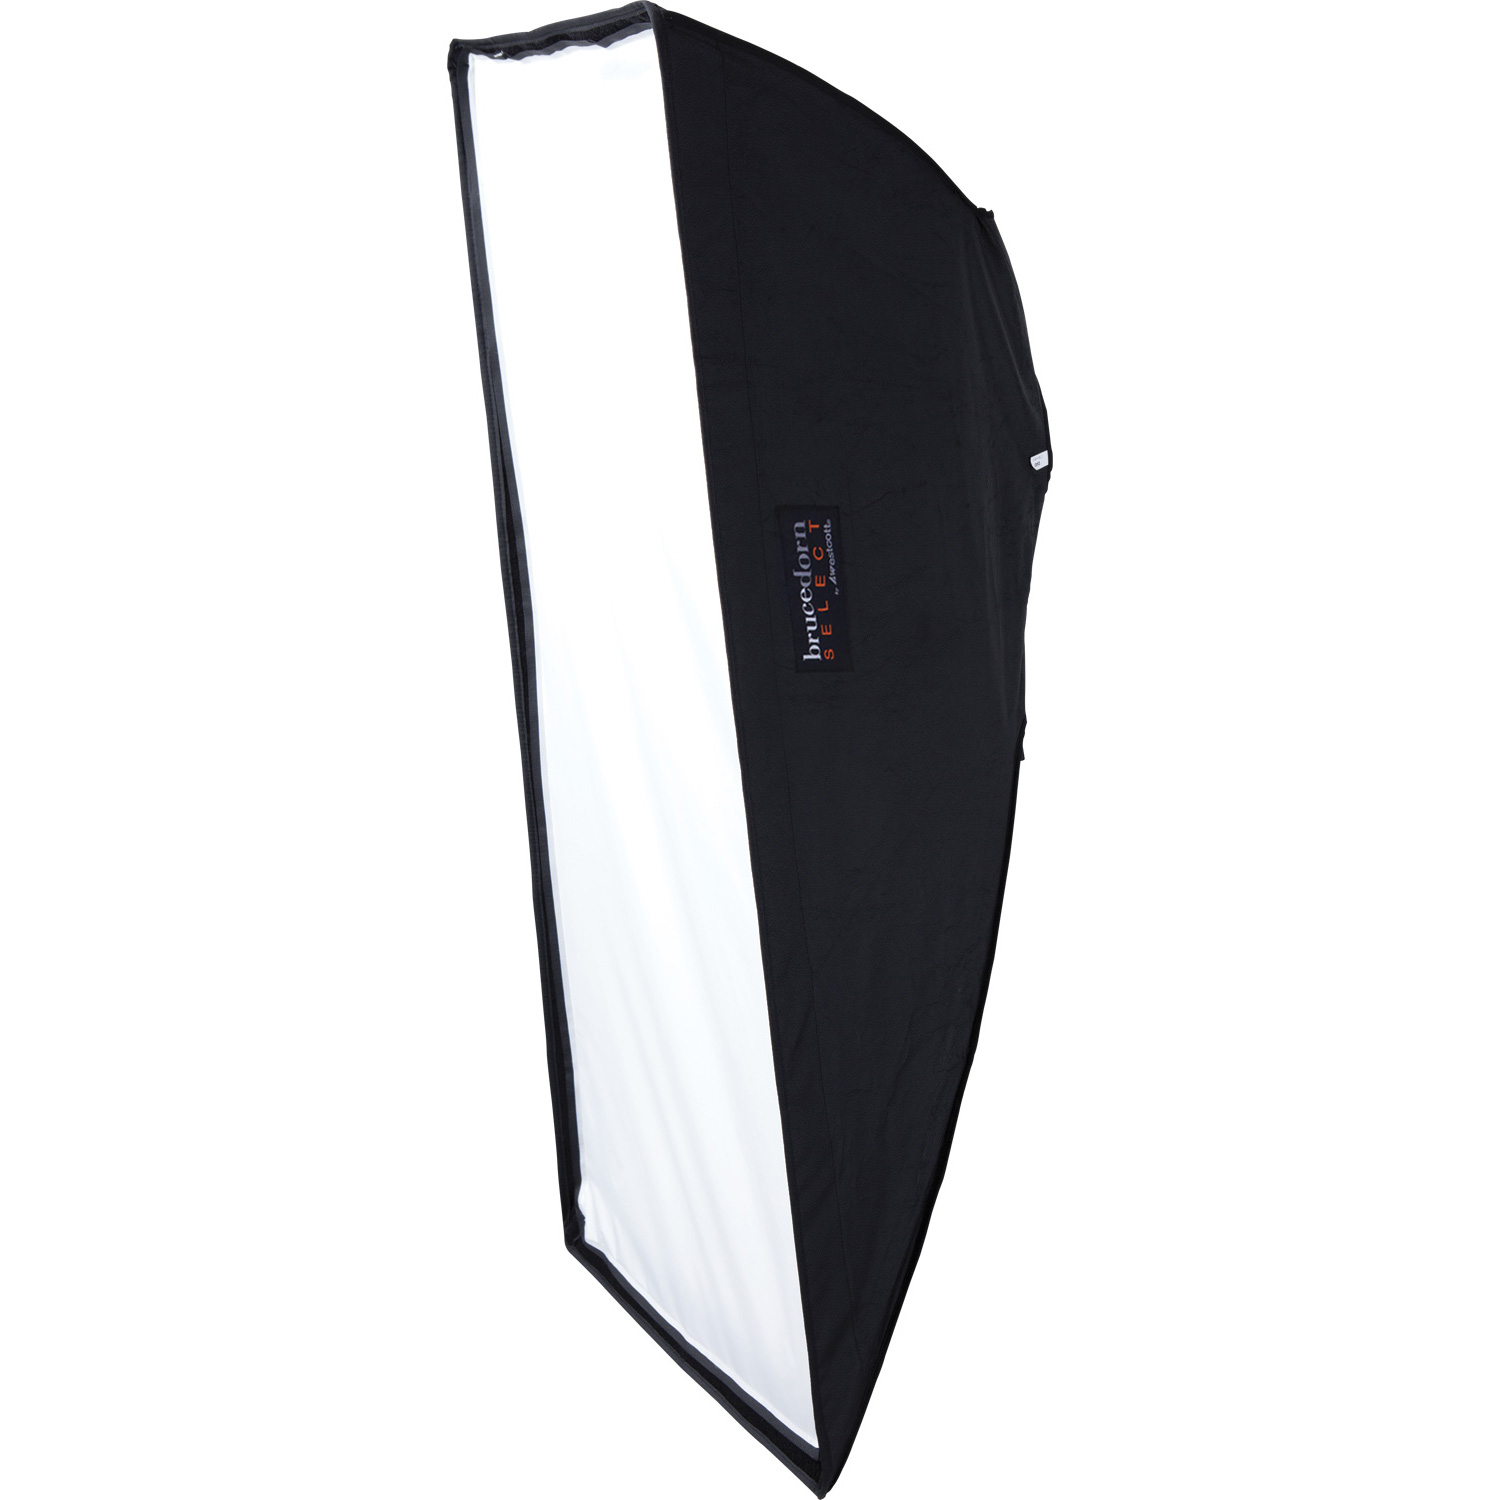 Pro 18-in. x 42-in. Asymmetrical Travel Softbox